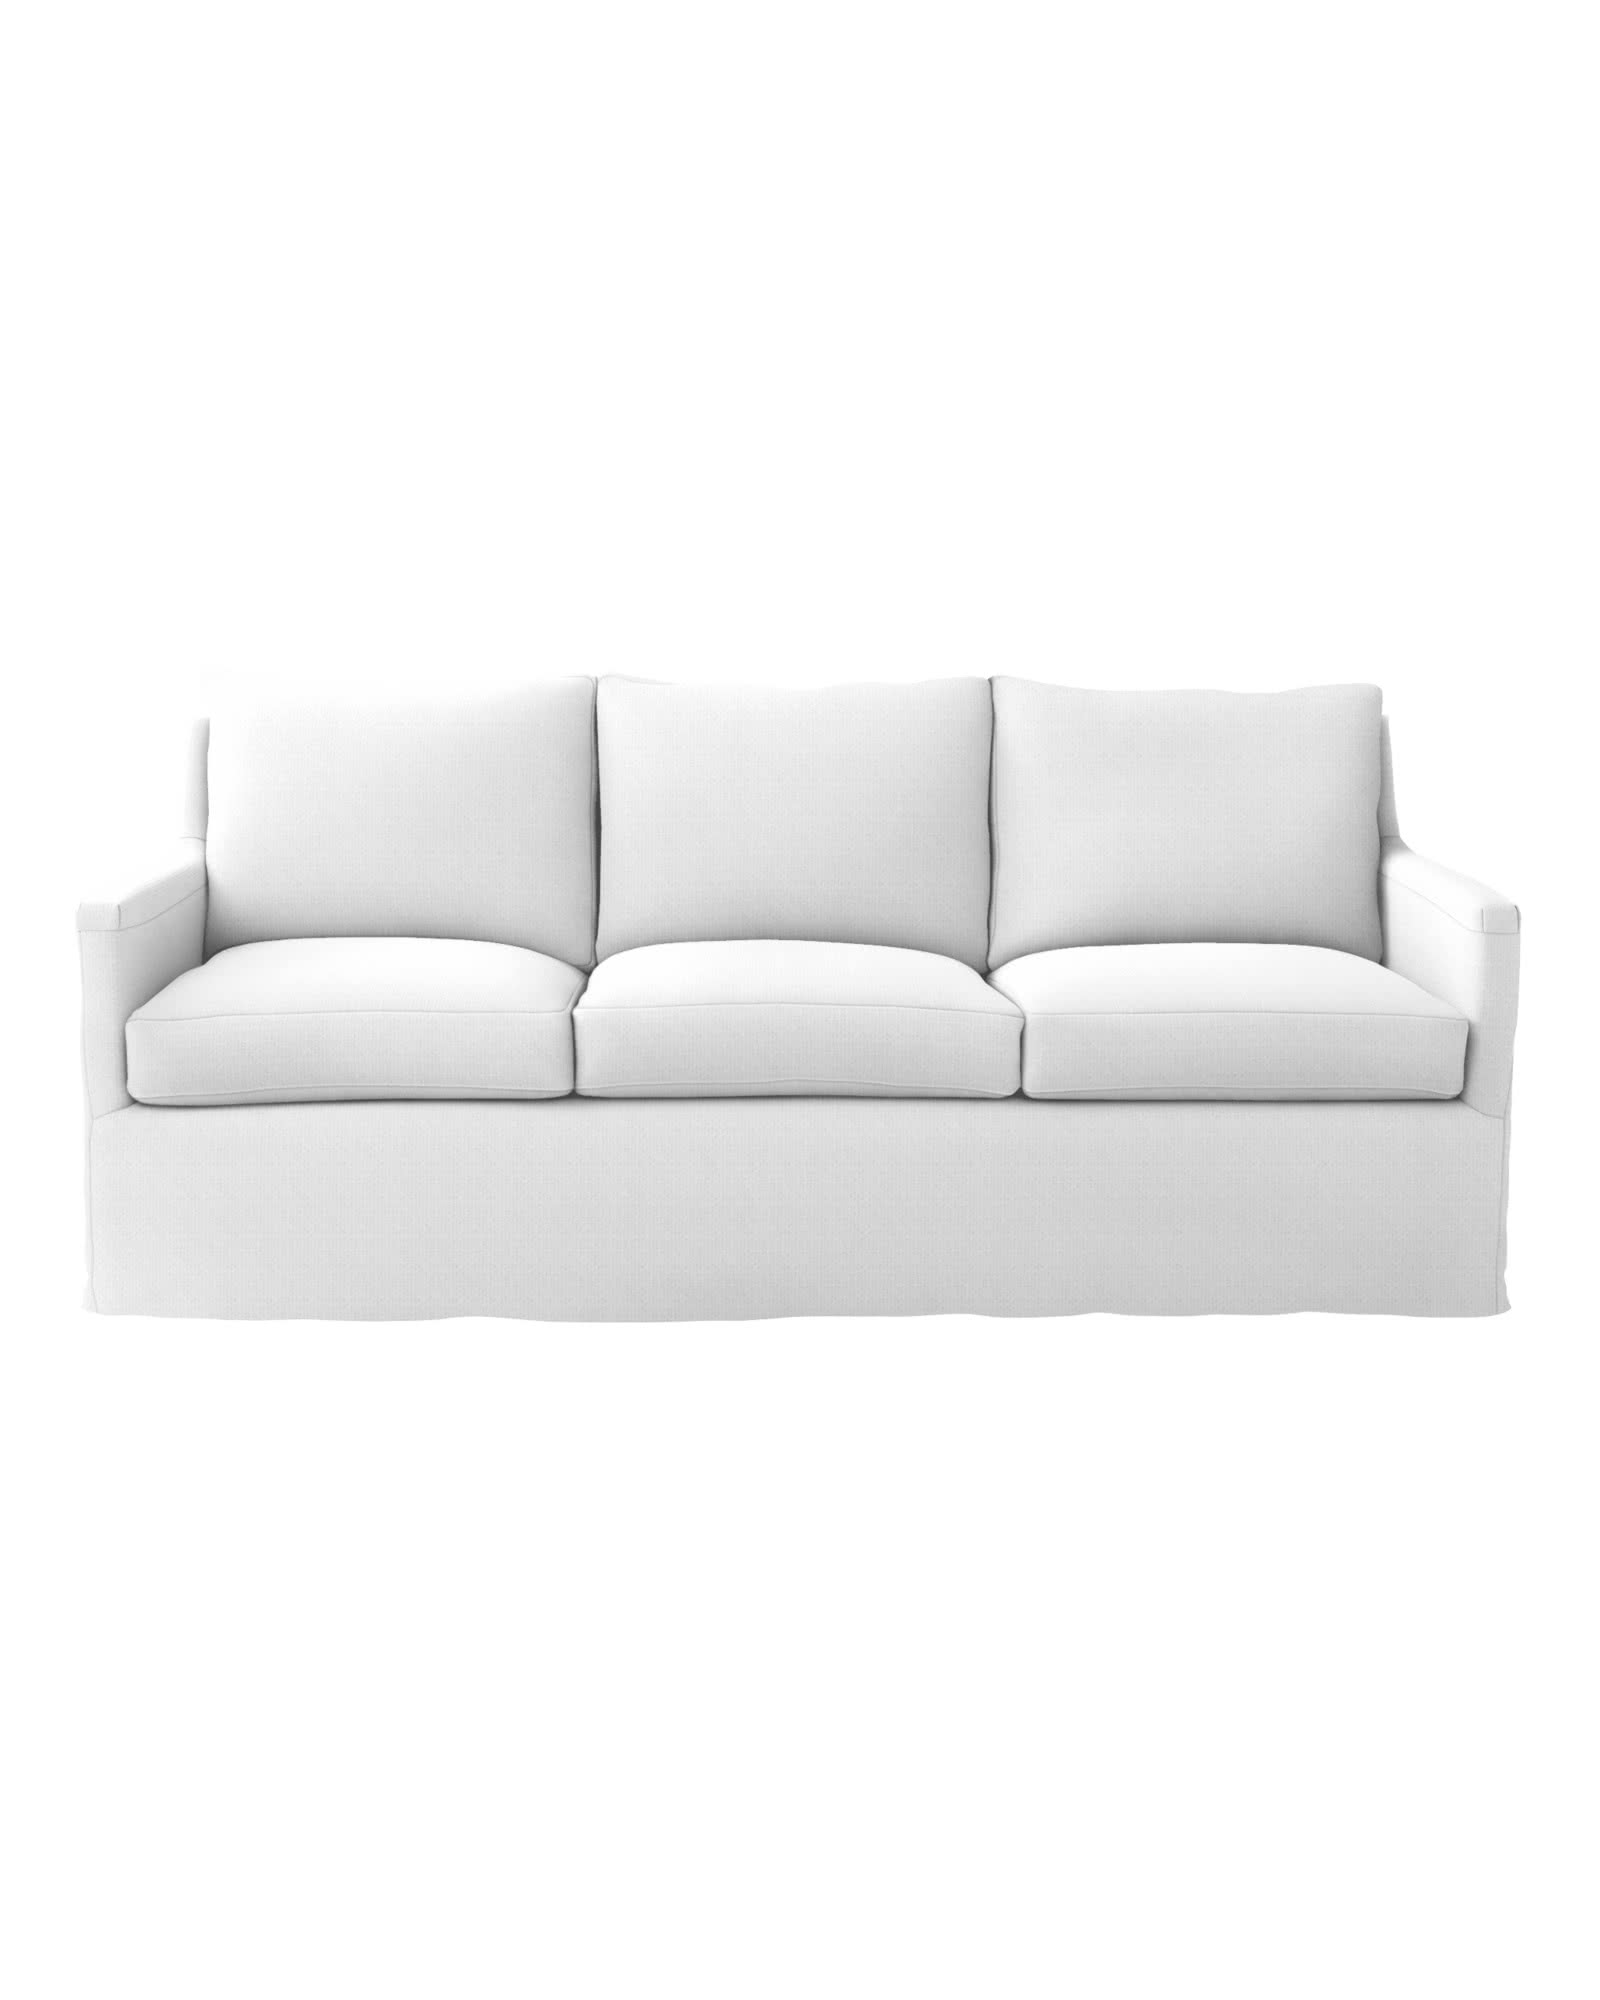 Spruce Street 3-Seat Sofa - Slipcovered